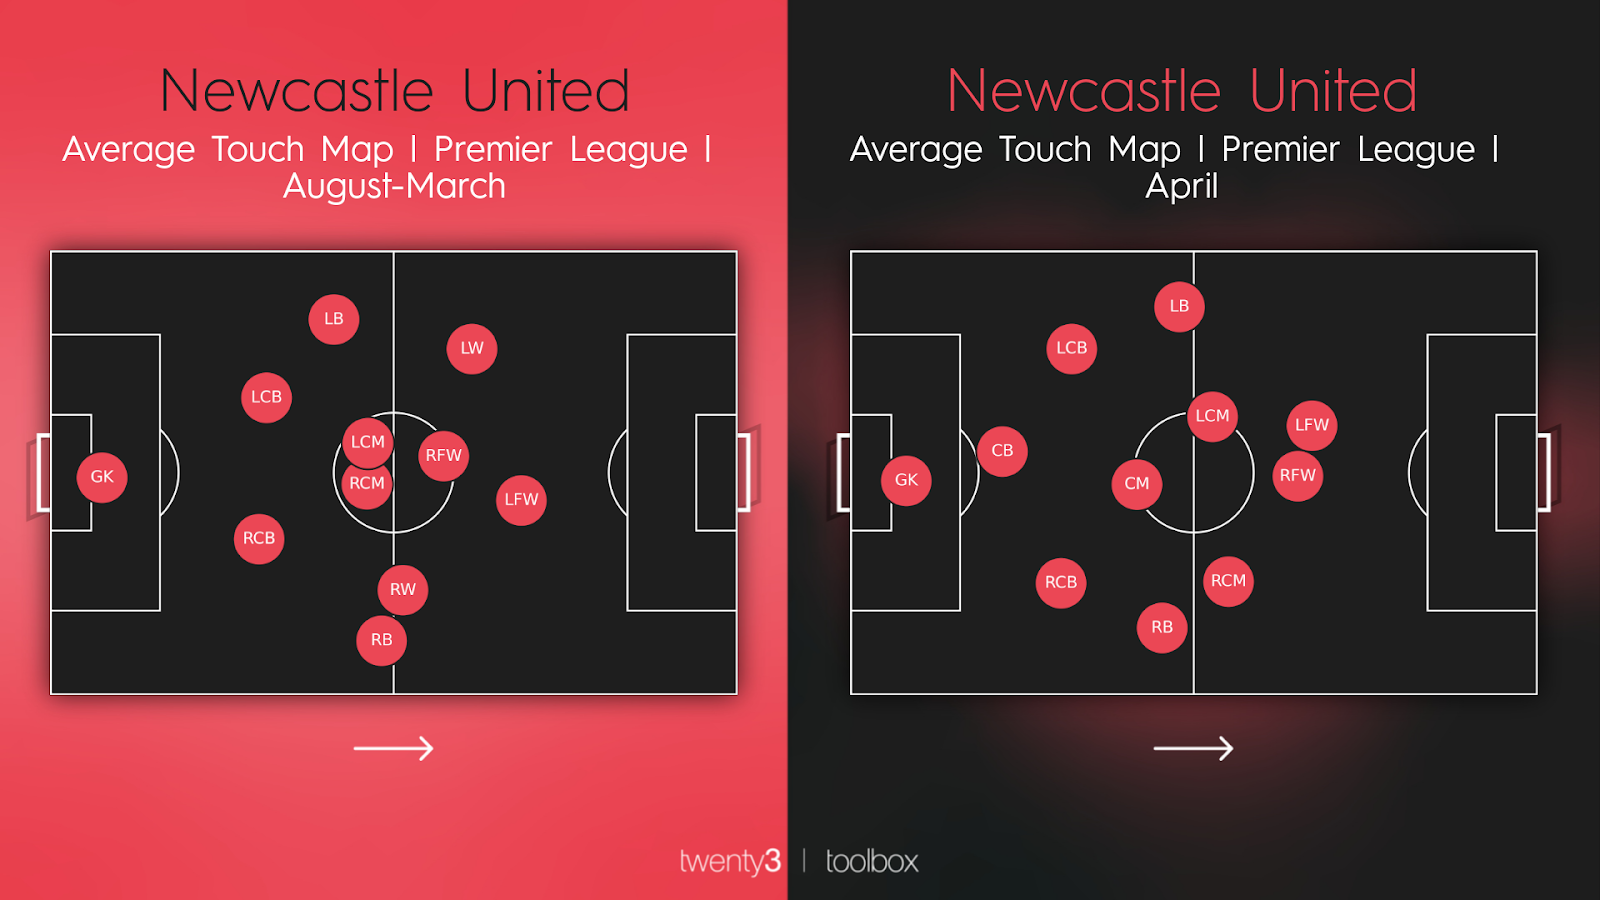 Newcastle United's average touch map this season vs their average touch map in April.